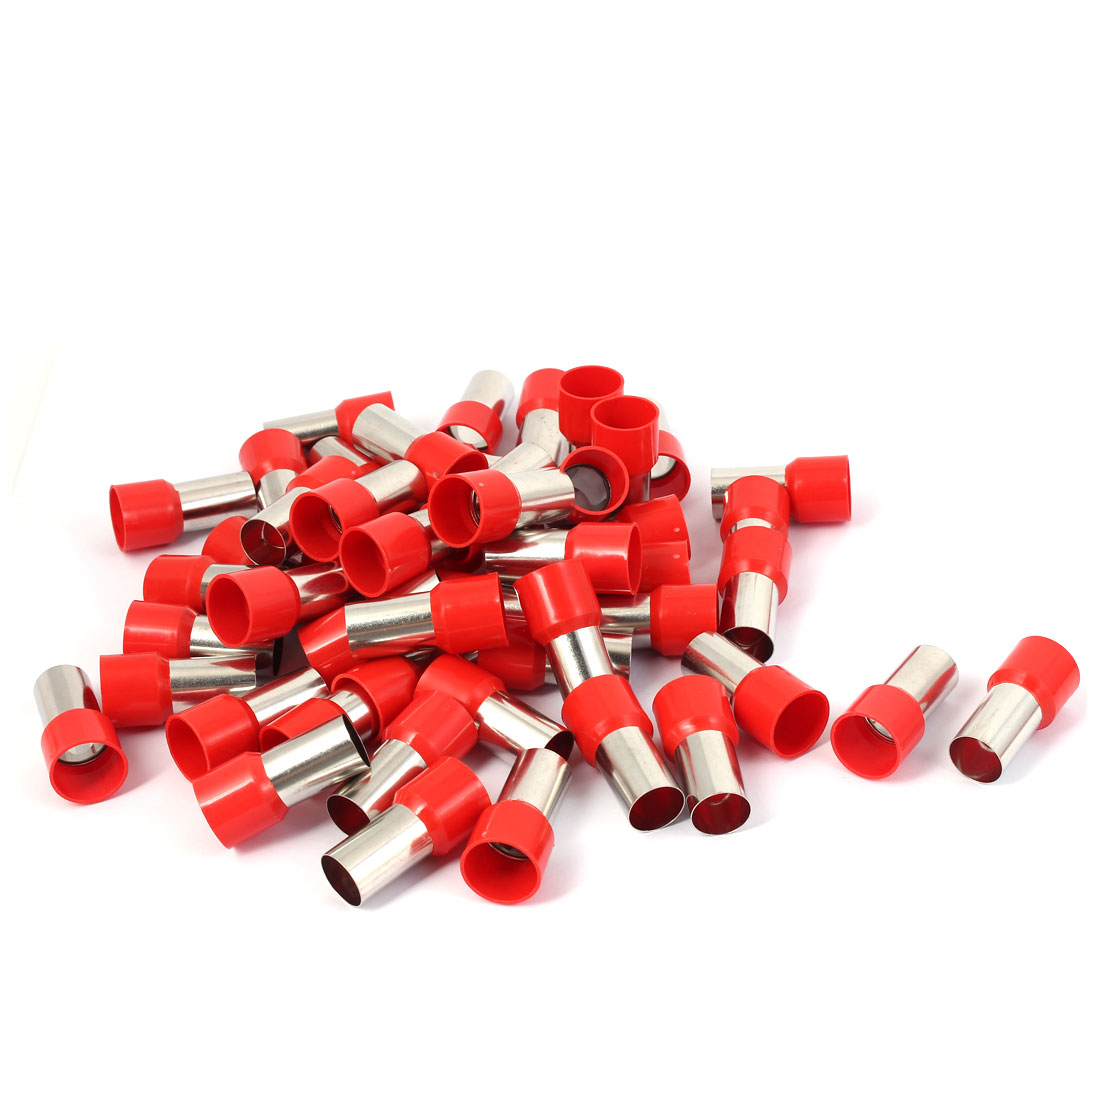 E70-20 Tube Style Electric Cable Wire Ends Connector Insulated Terminal 50pcs